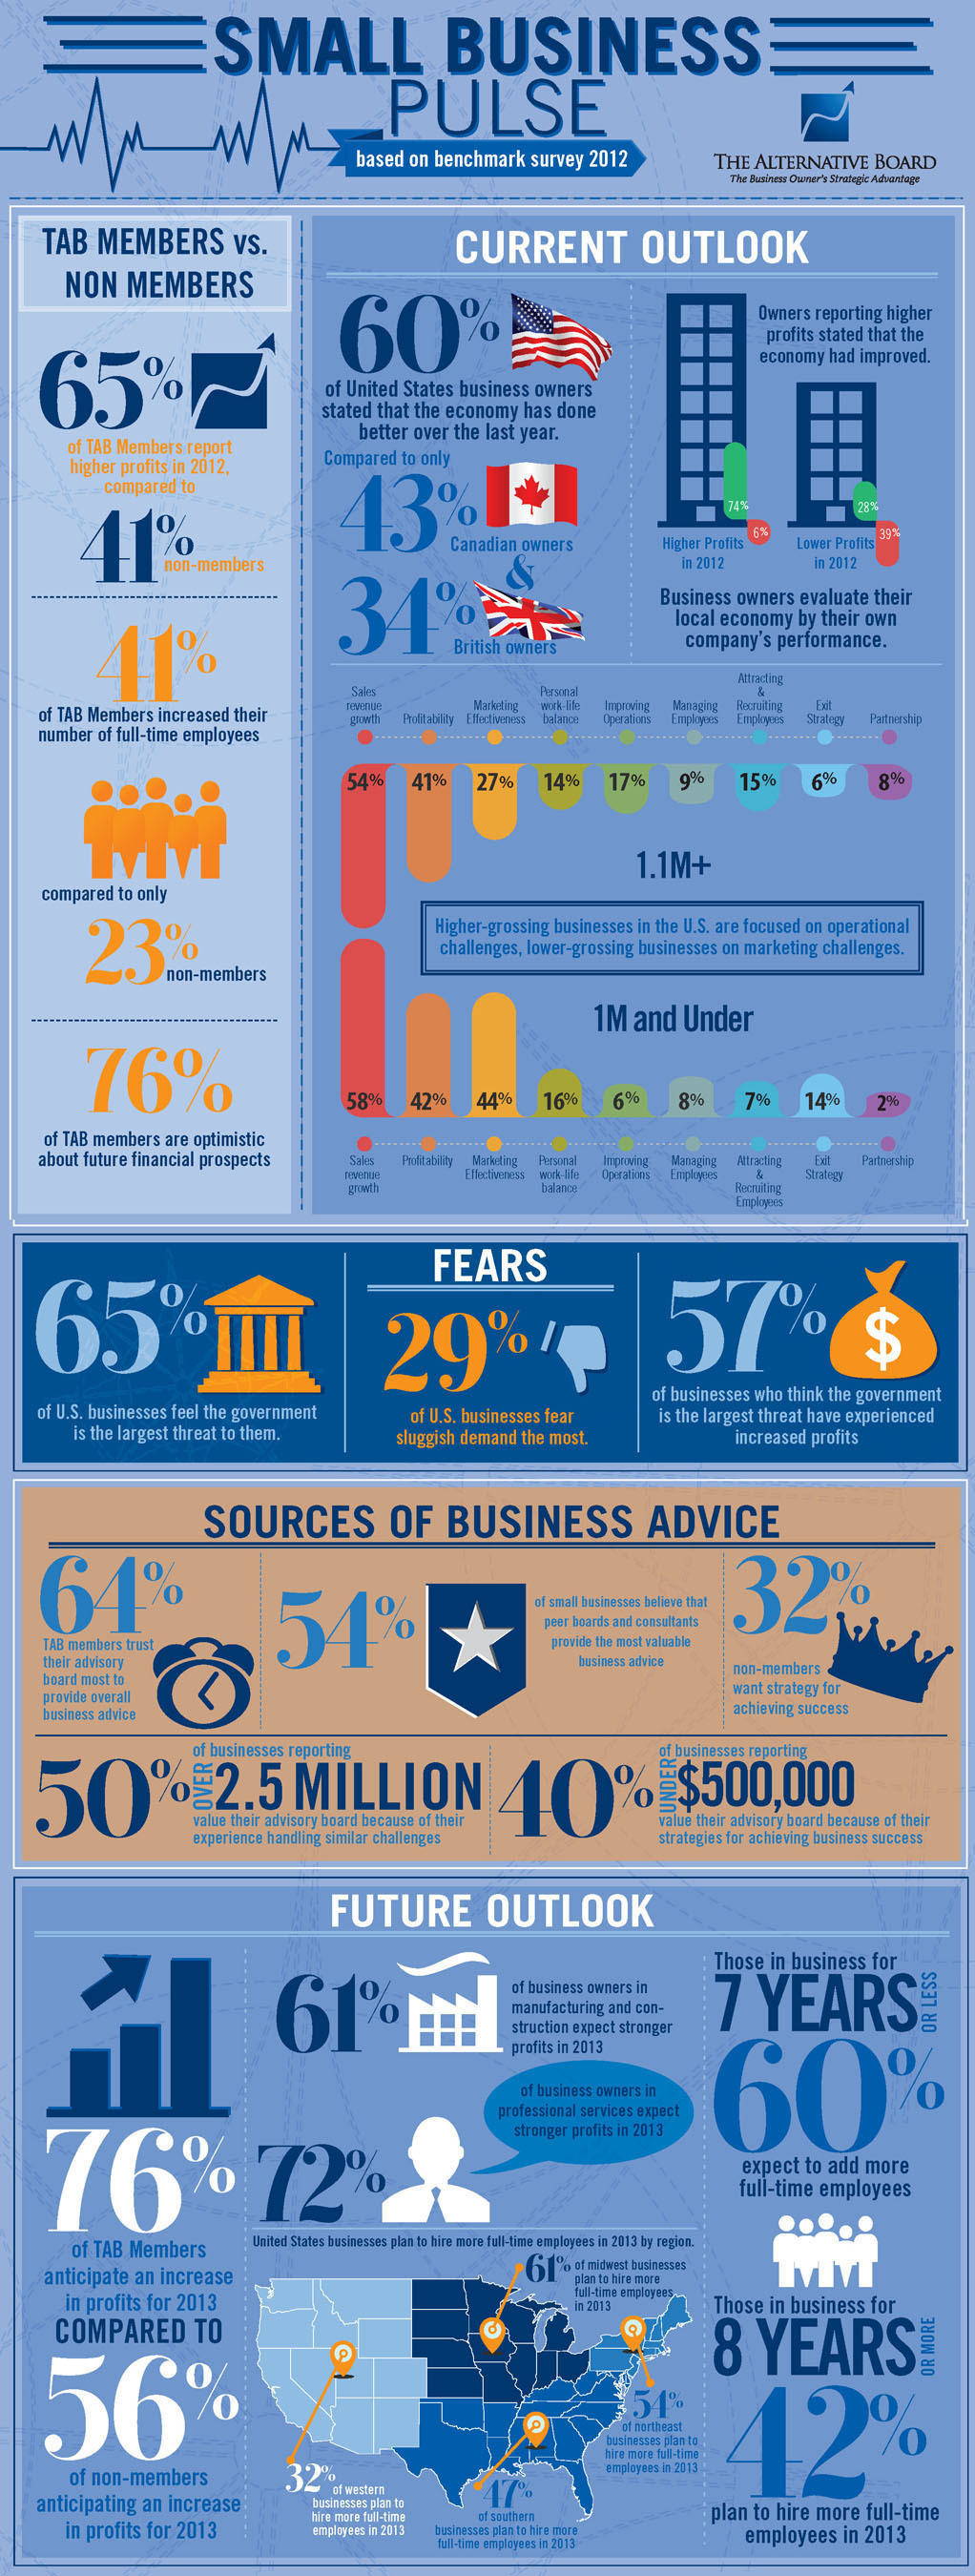 The Alternative Board Q1 2013 Business Pulse Survey. (PRNewsFoto/The Alternative Board) (PRNewsFoto/THE ...